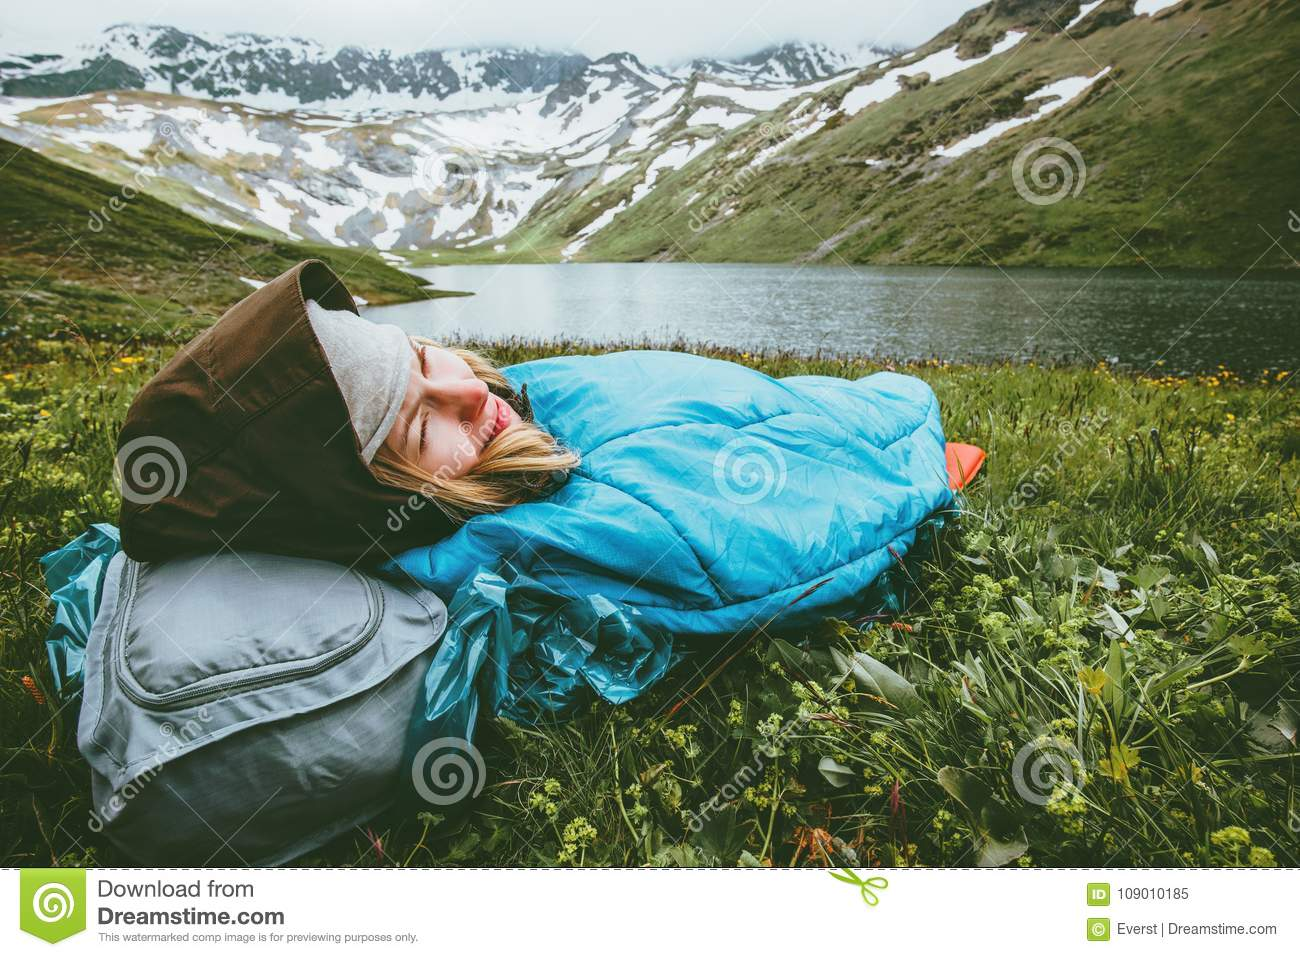 Woman relaxing in sleeping bag laying on grass enjoying lake and mountains